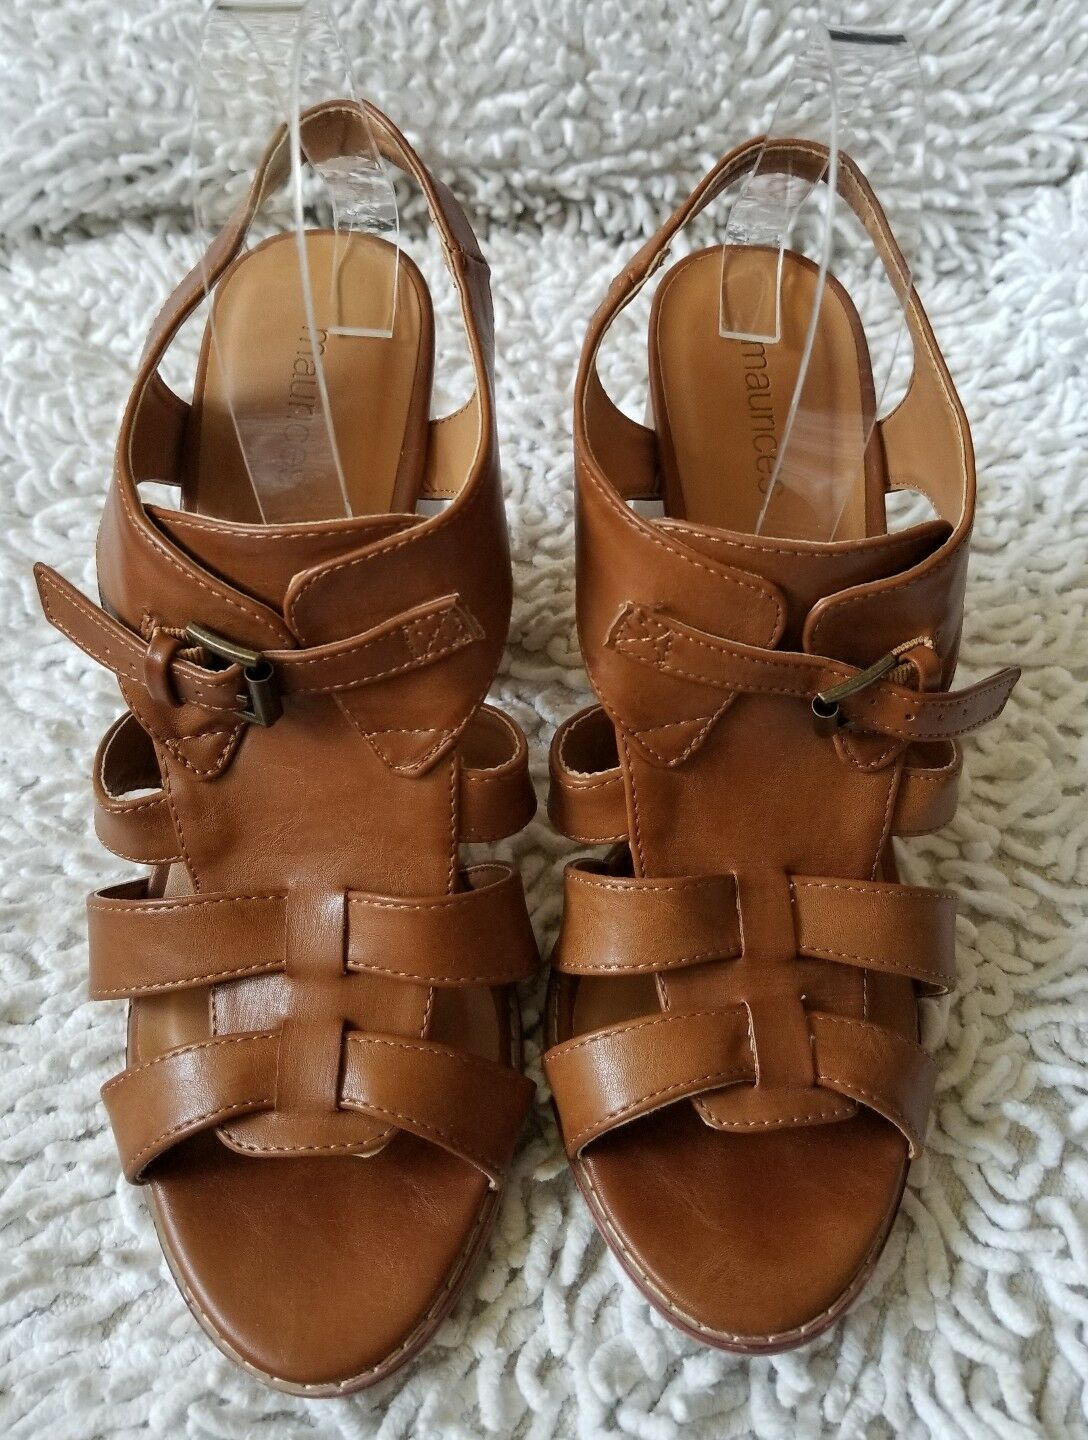 MAURICES Womens Lady City Strap Chestnut Heels Sandals shoes Sz 10 M